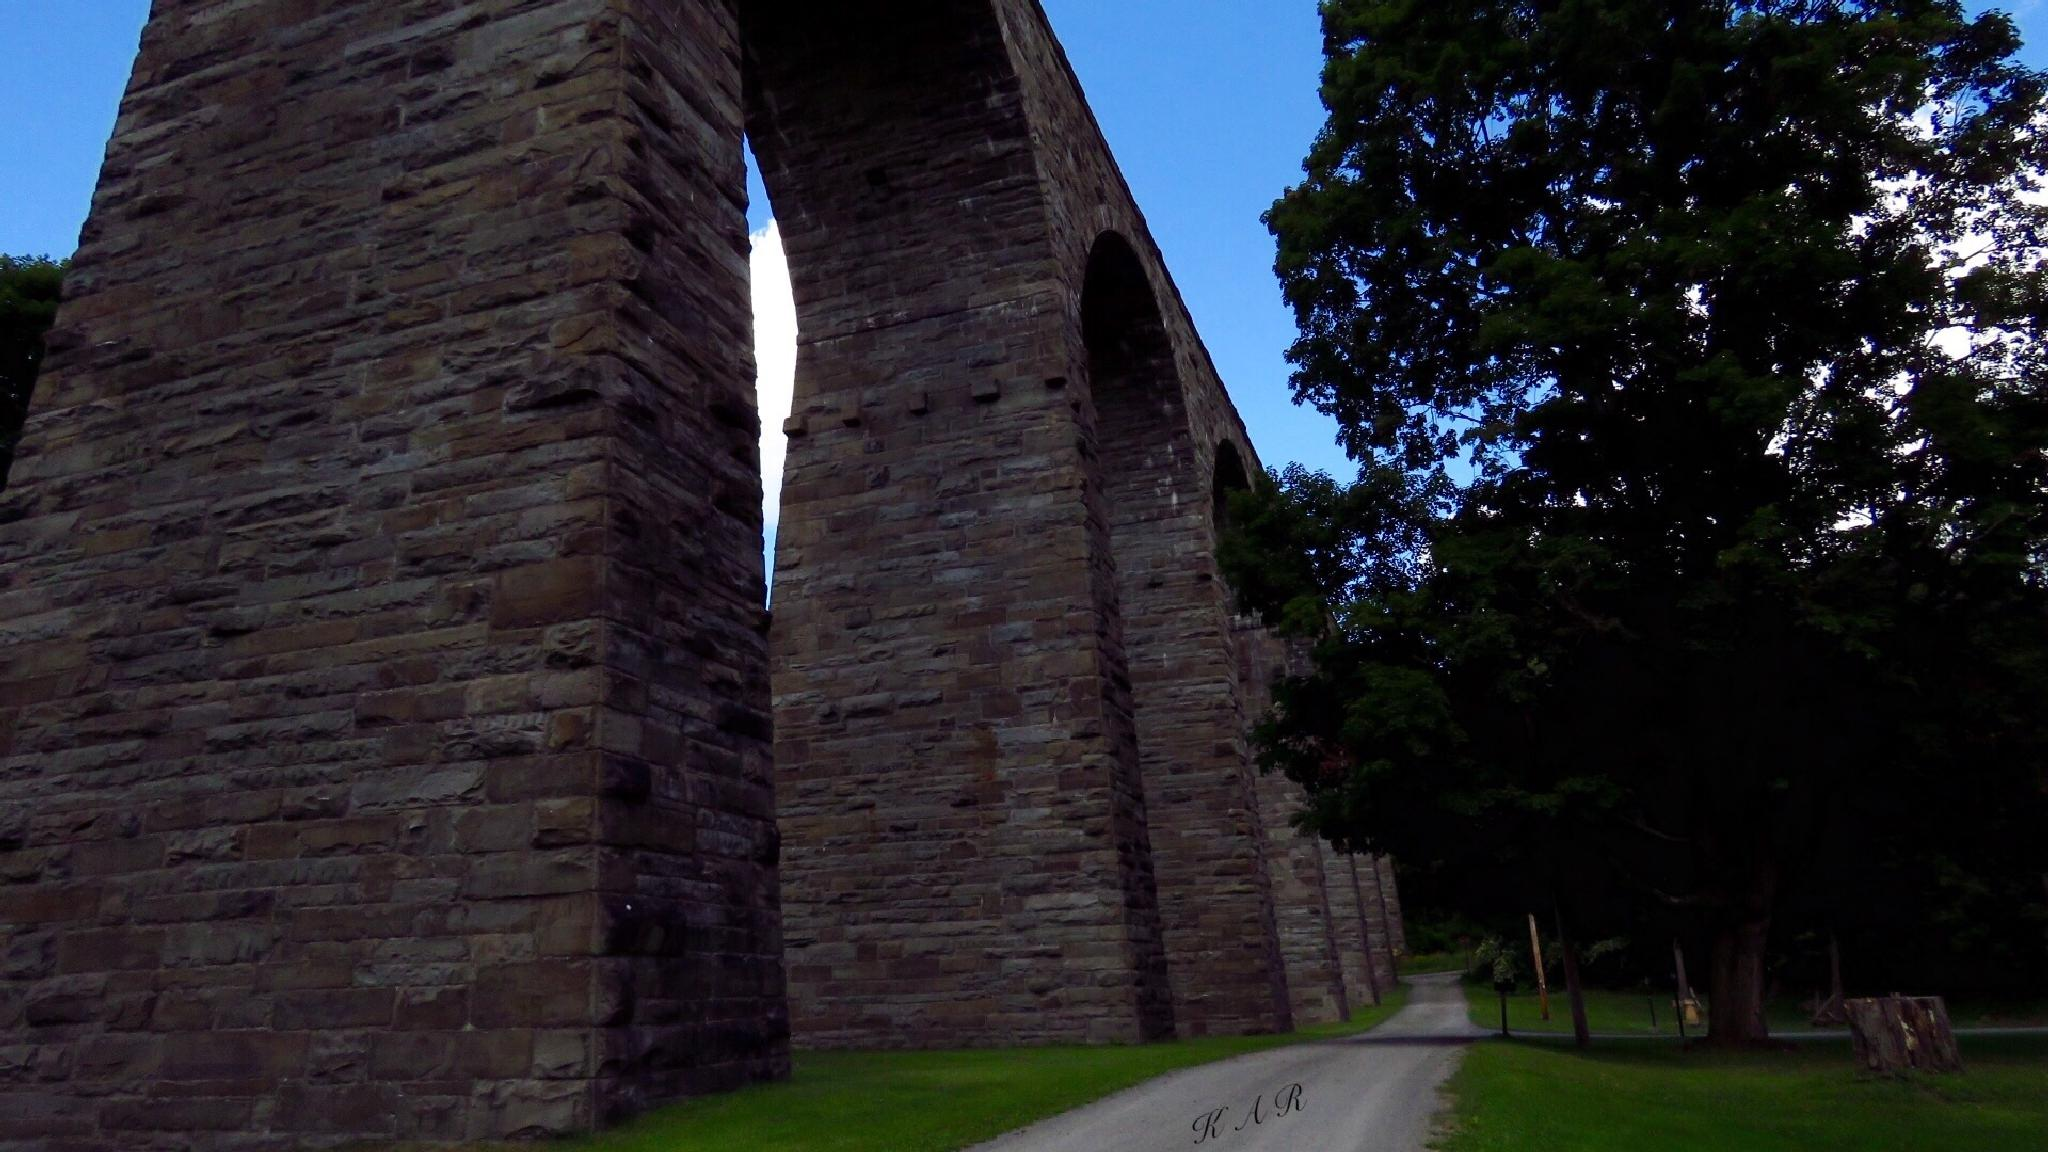 Starrucca Viaduct by Kimberly